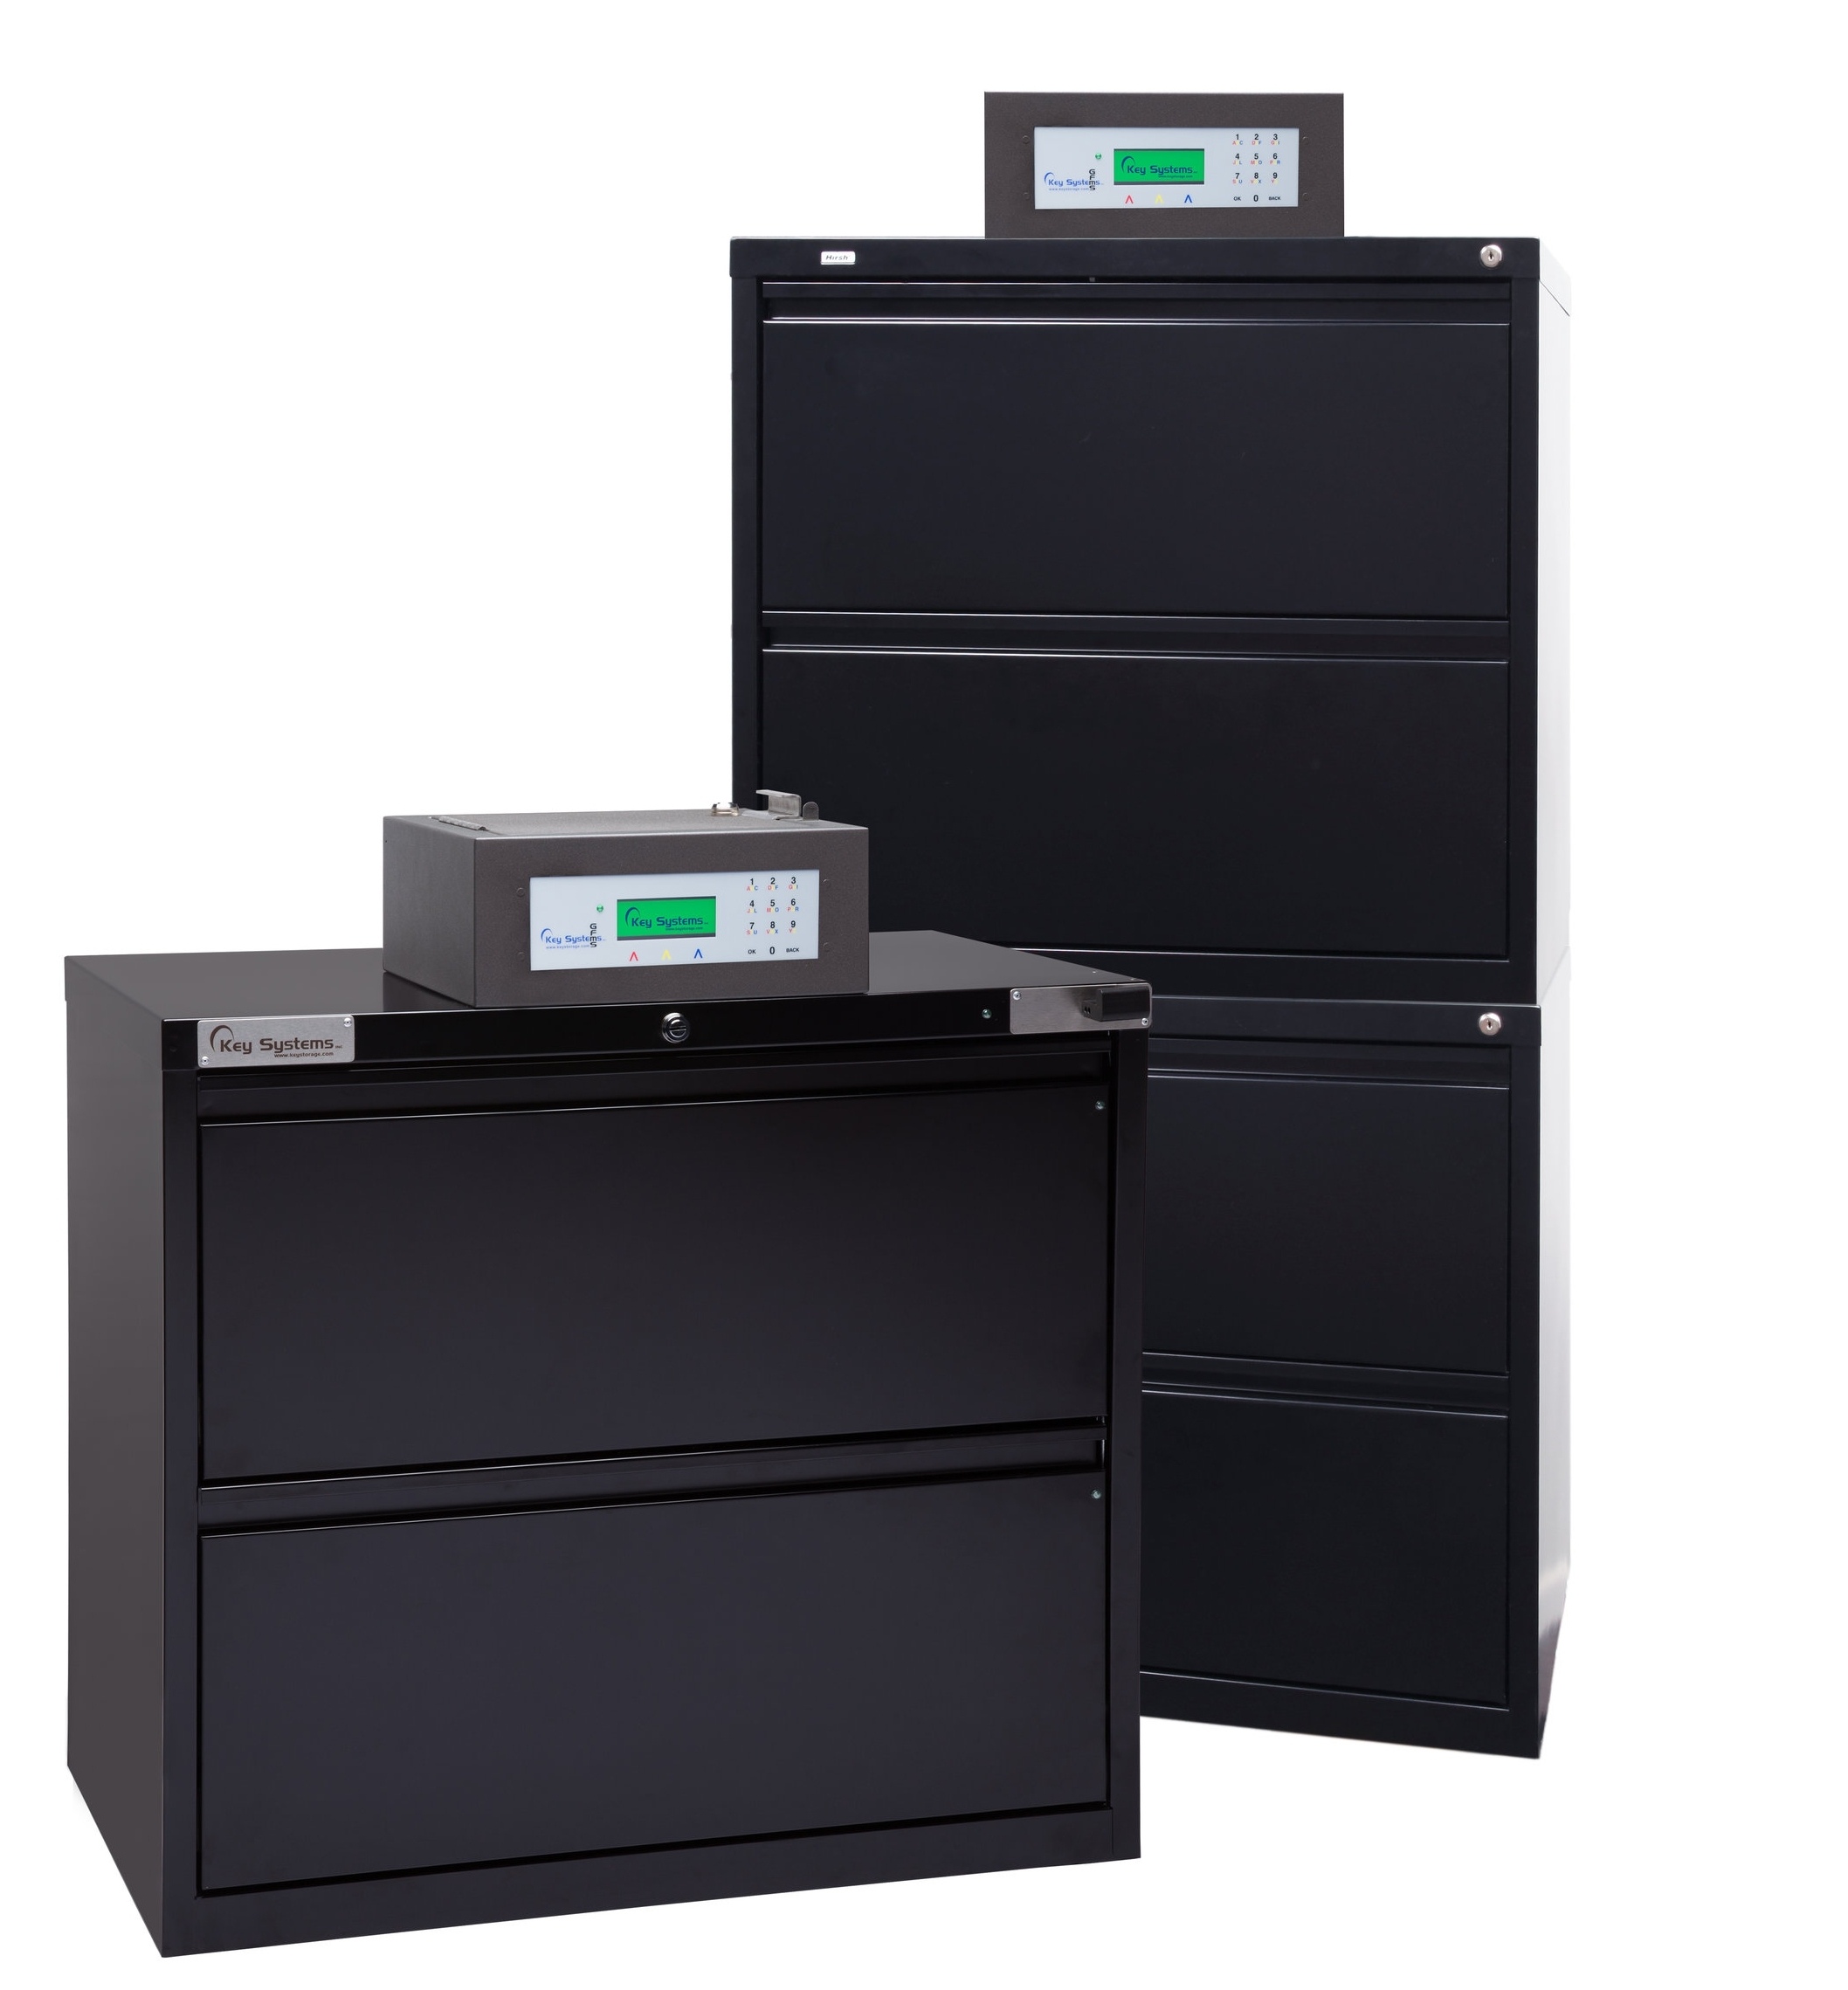 """2-DRAWER LATERAL FILE CABINETS: 4-DRAWER LATERAL FILE CABINETS:  Height: 28"""" Depth: 18.625"""" Height: 52.5"""" Depth: 18.625"""""""